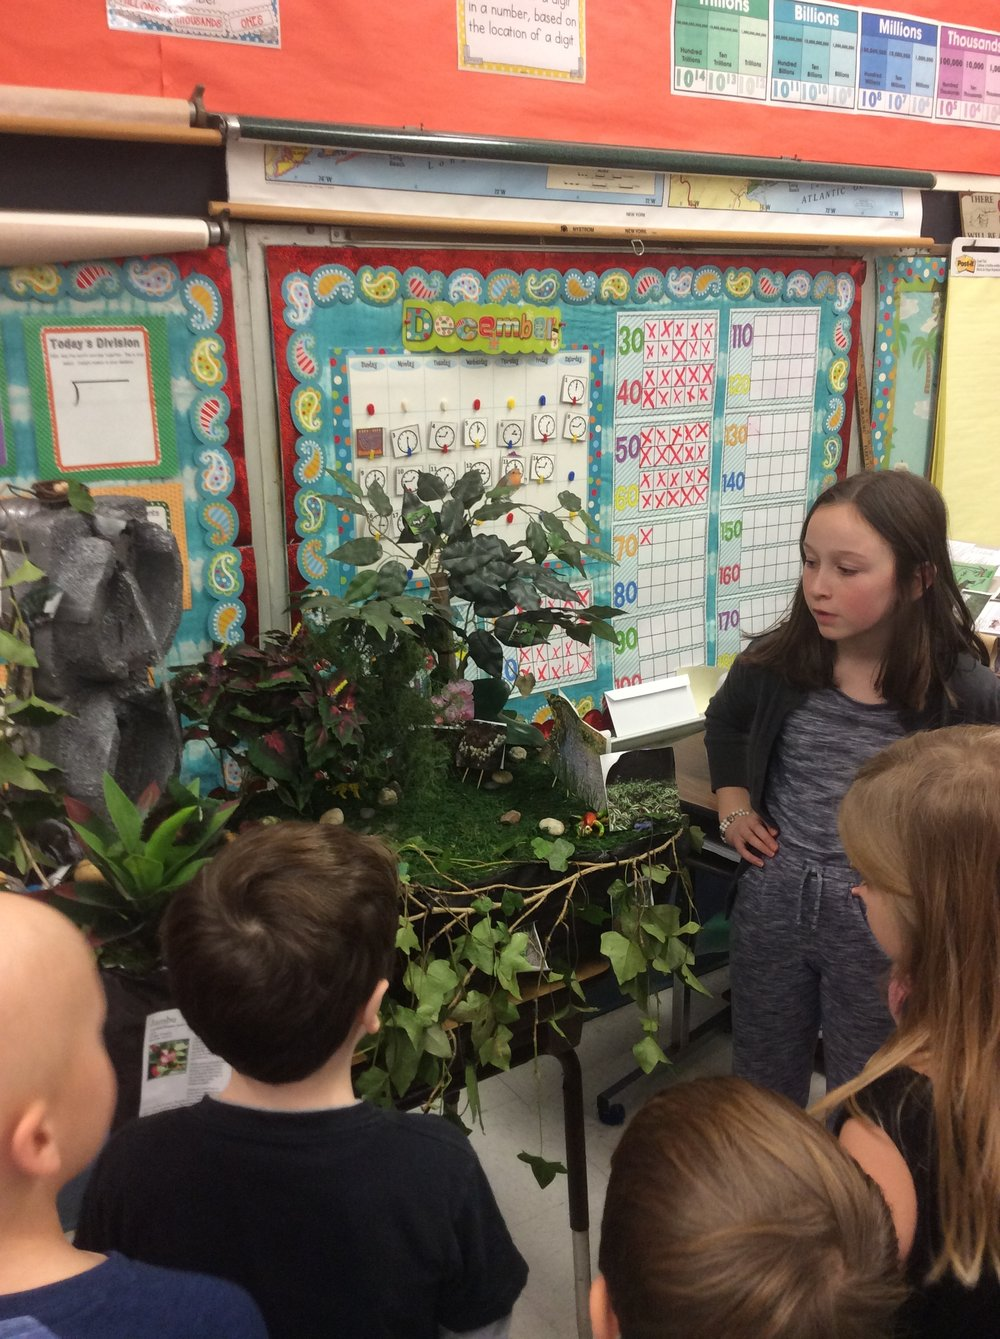 Caroline's biome was Rainforest. She created this interactive display that incorporated a waterfall, pond and some live plants.